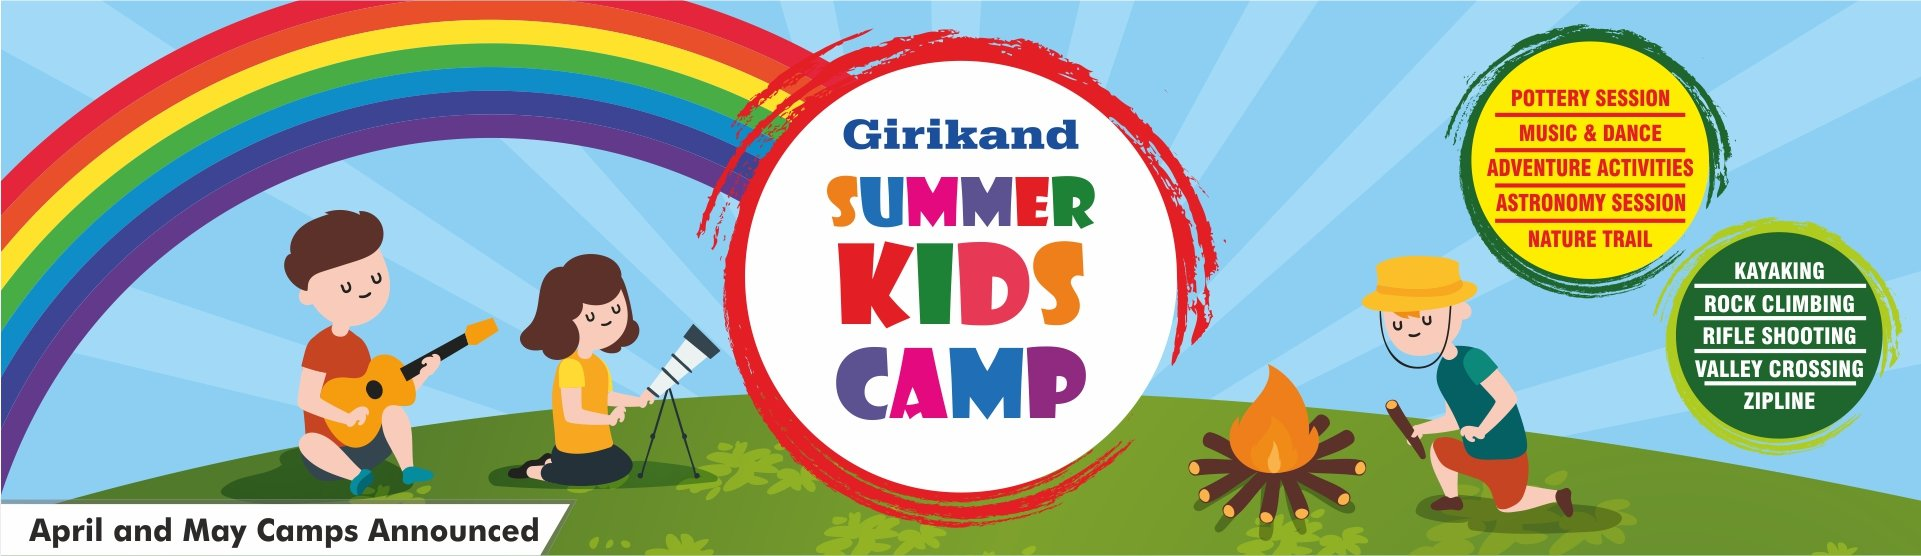 Kids Camp (8-14 Years) - Collection